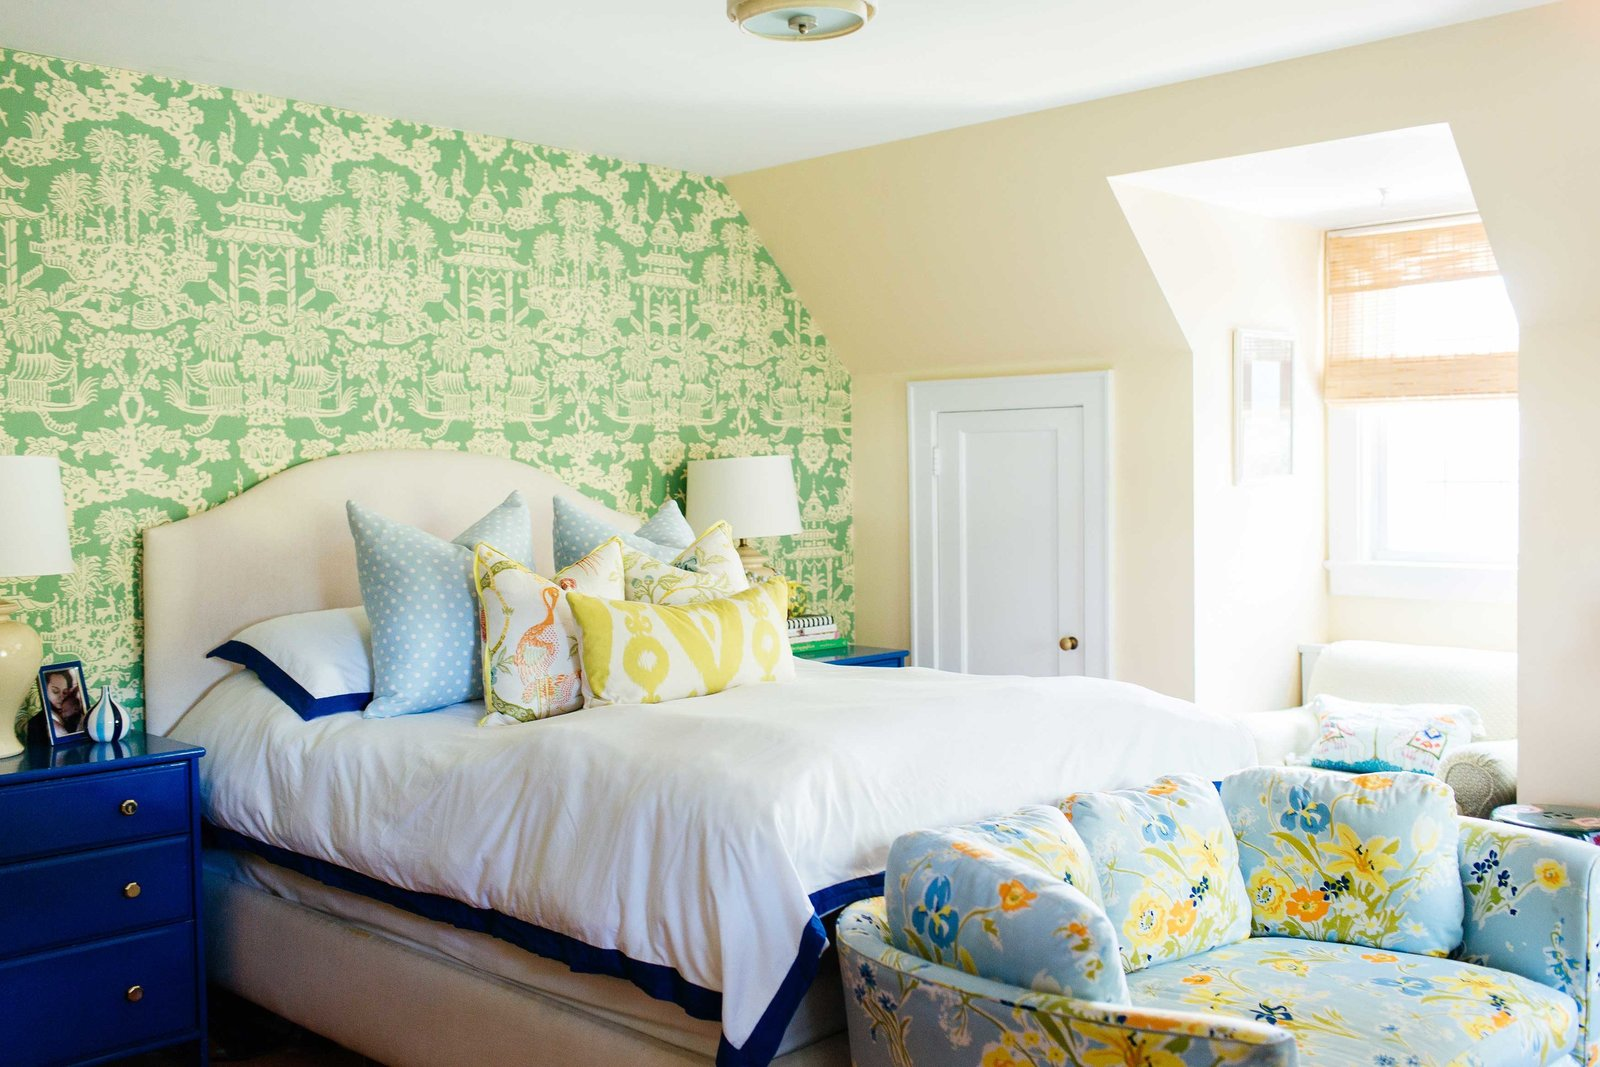 A white bed and blue end tables in front of a green wall papered wall.